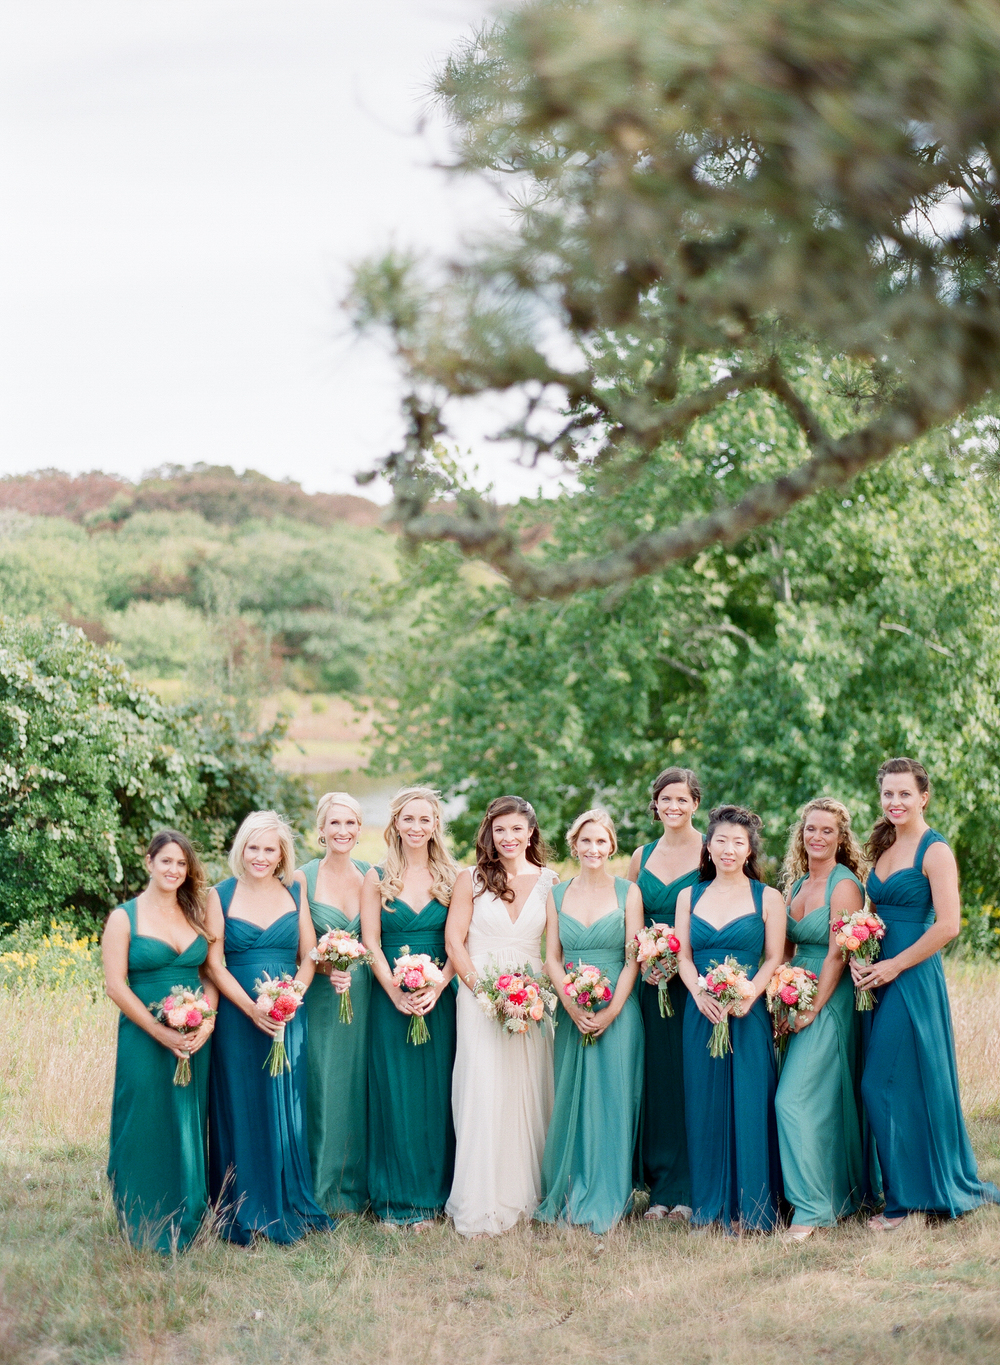 michellebeller.com | Michelle Beller Photography | Martha's Vineyard Wedding | Destination Wedding Photographer | Massachusetts Wedding Planning